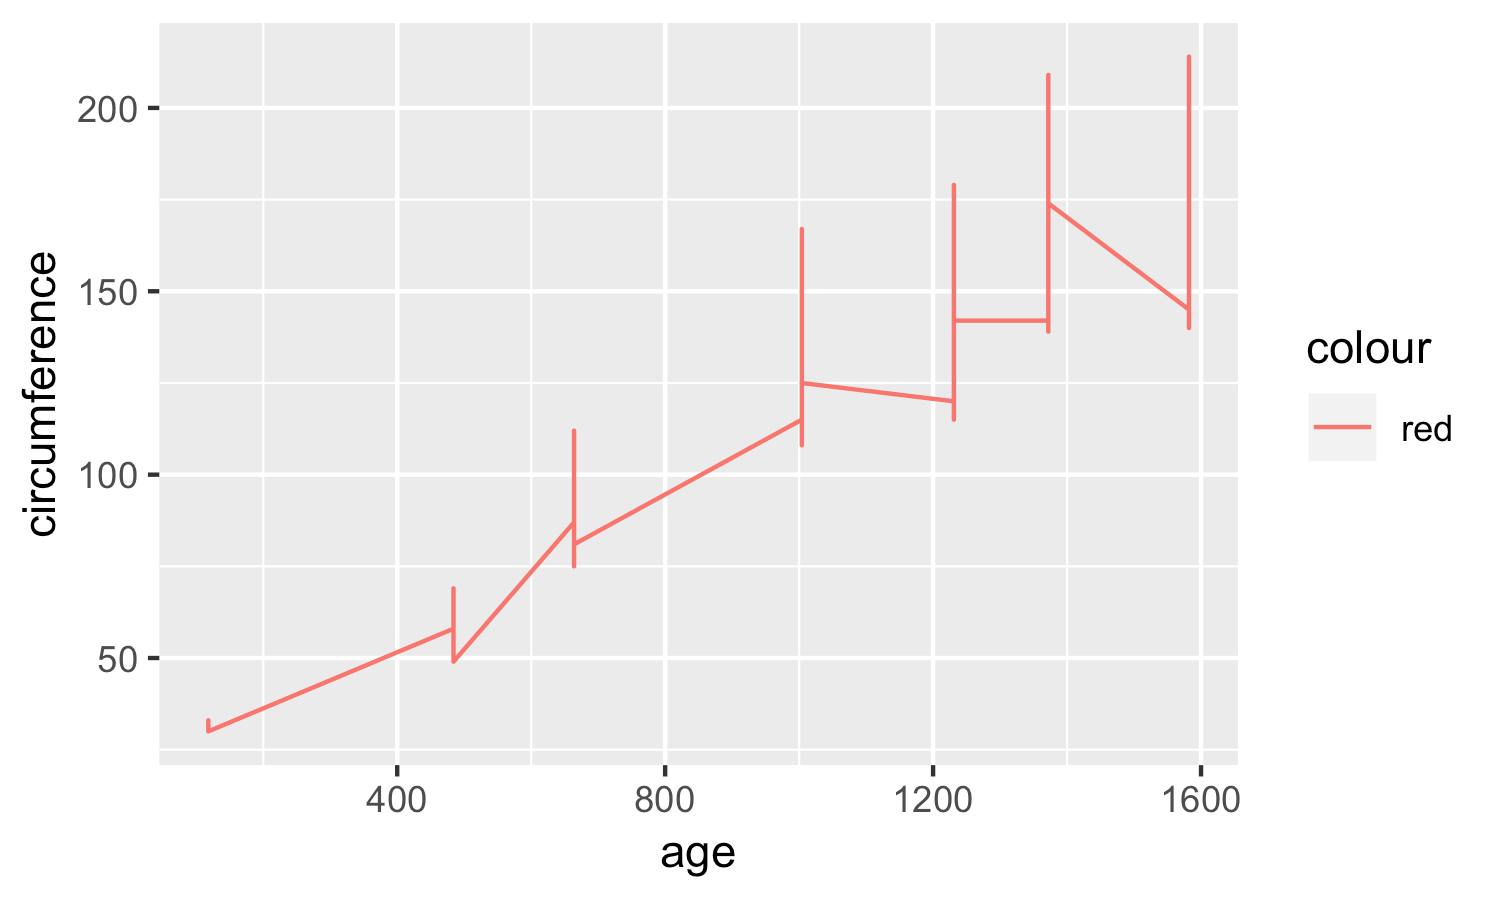 hight resolution of in this case ggplot actually does produce a line graph success but it doesn t have the result we intended the graph it produces looks odd